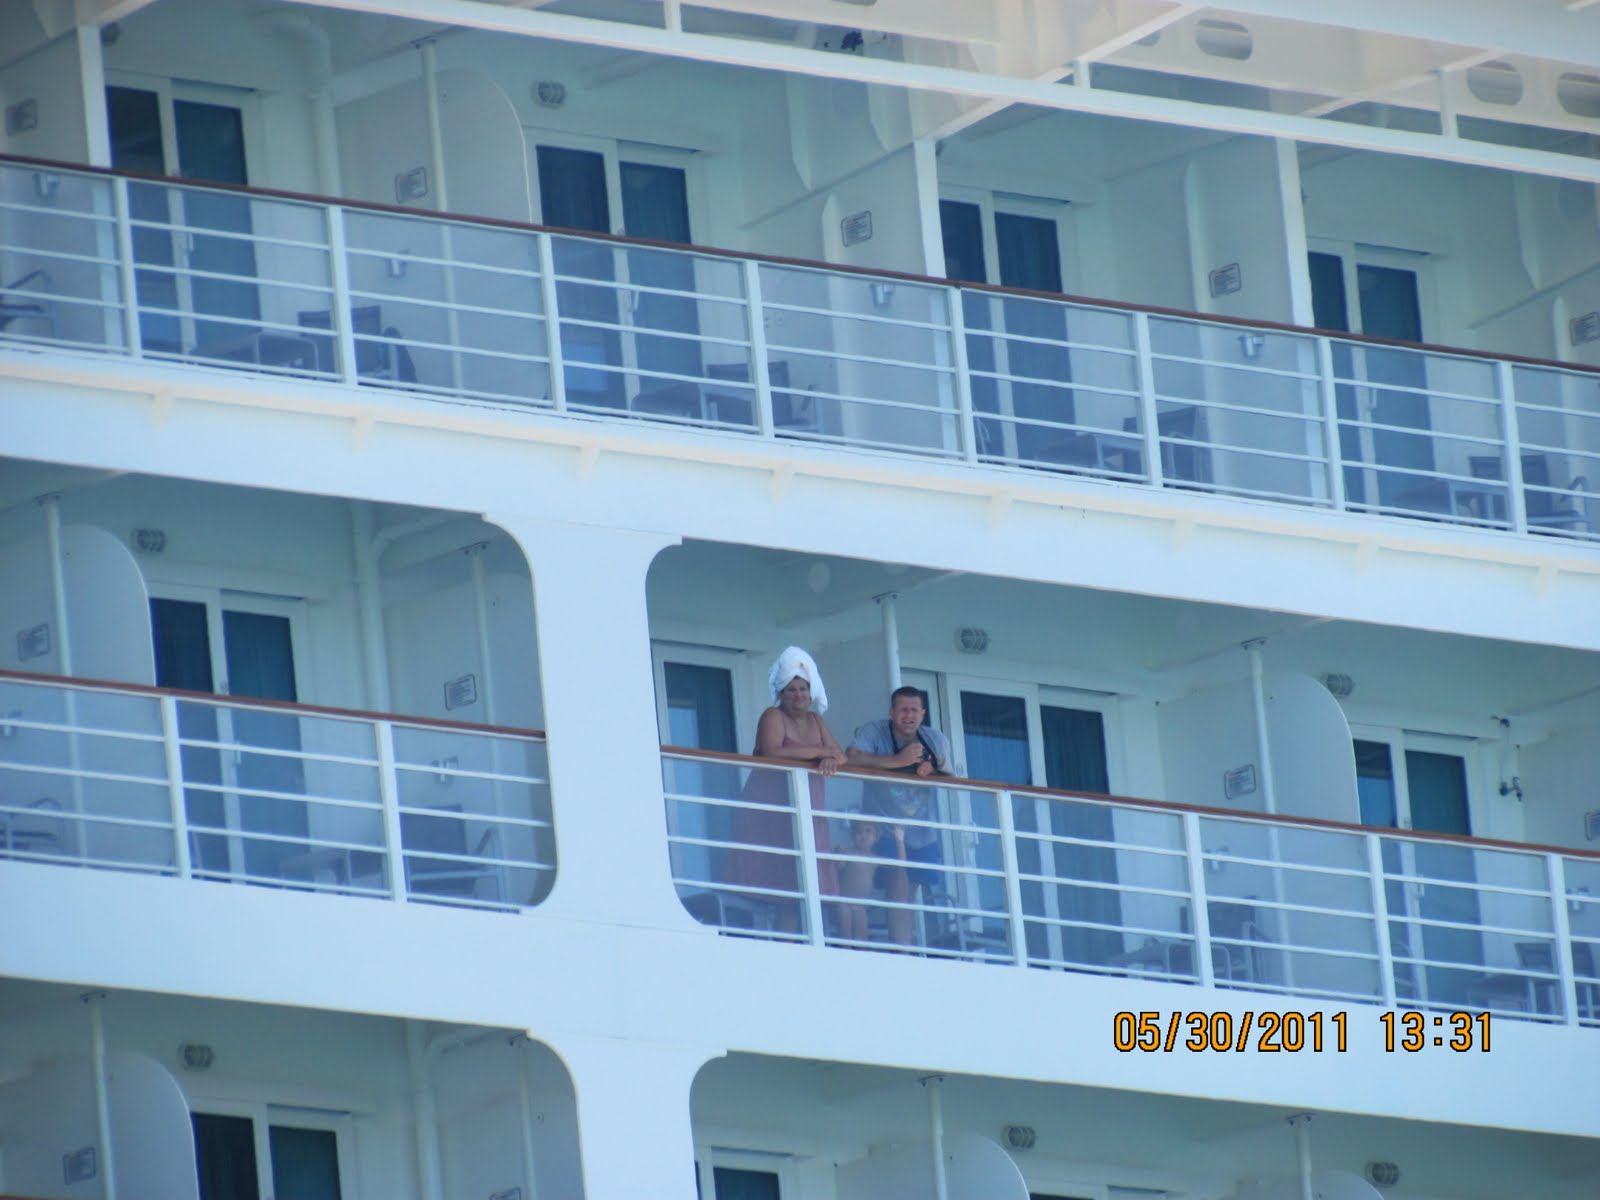 nude balcony Cruise ship